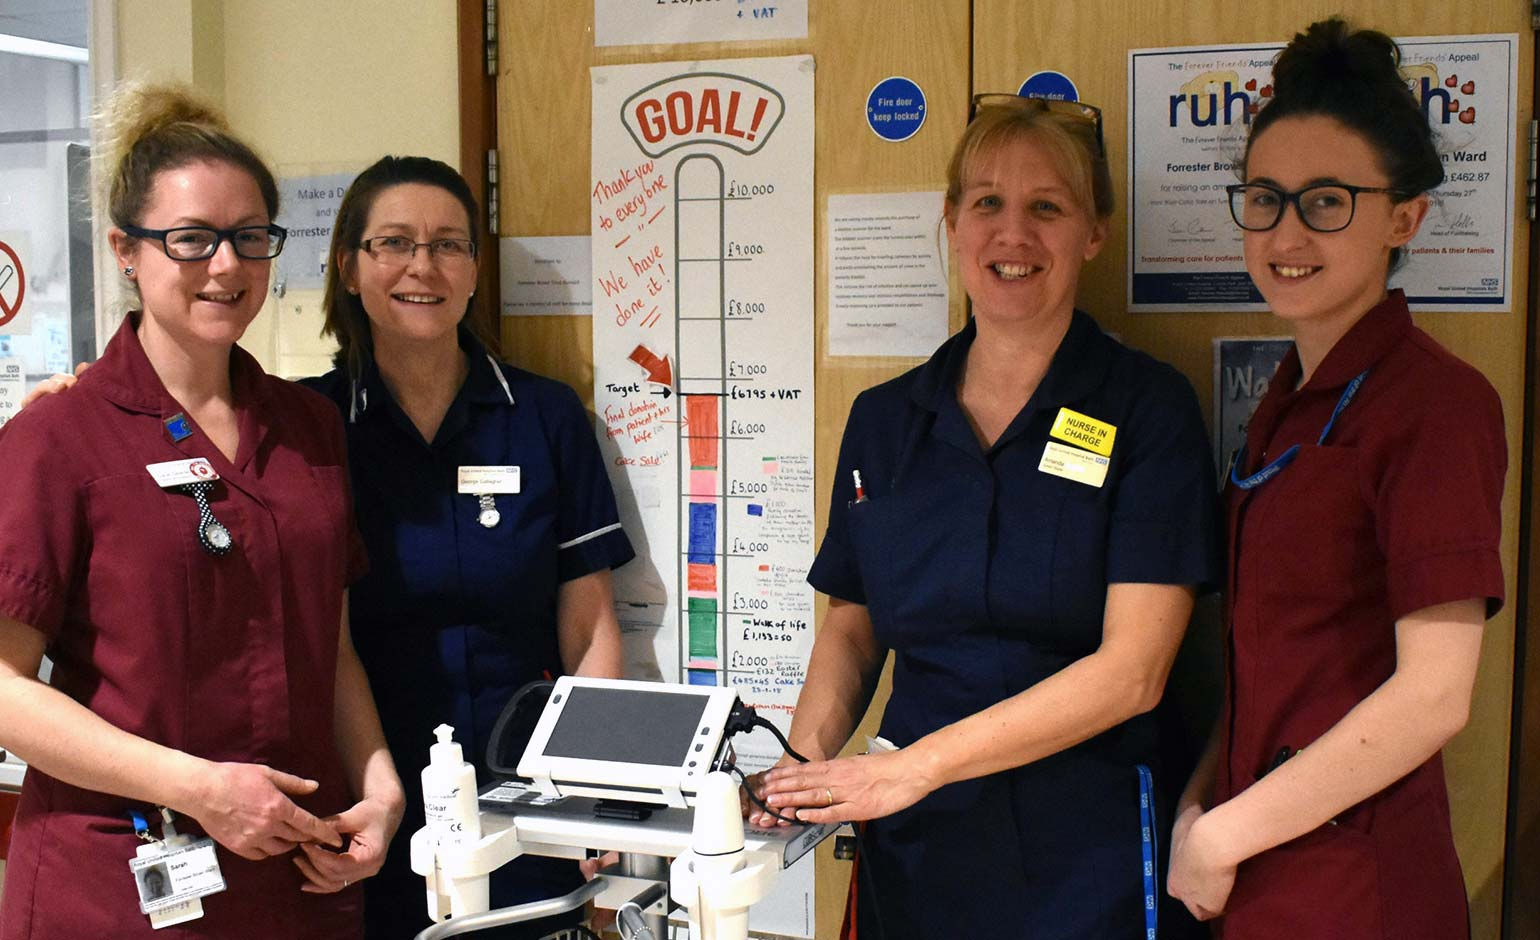 Staff at the RUH in Bath thank supporters for donations towards new scanner